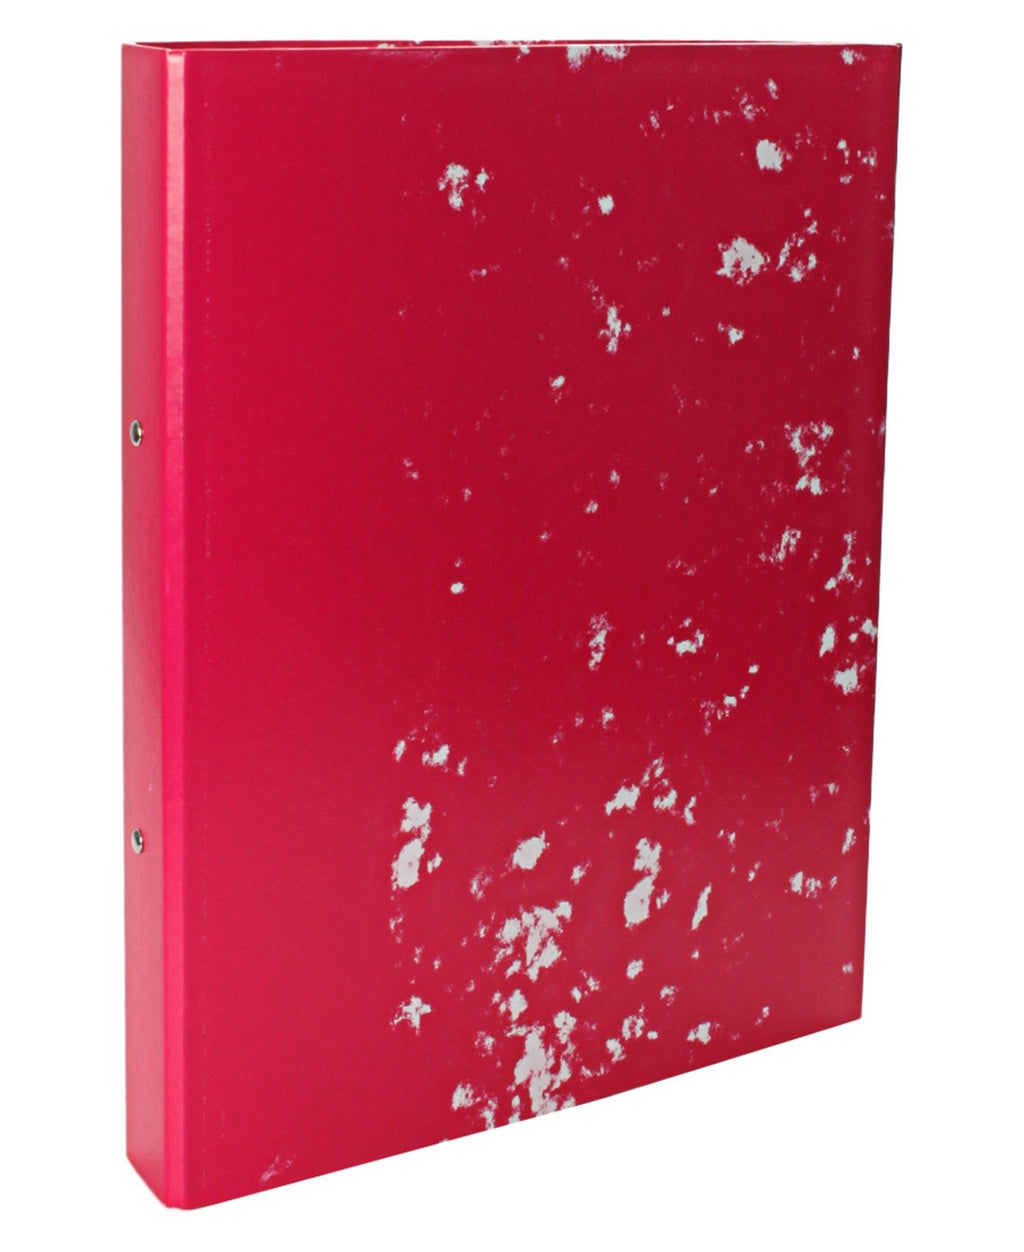 Marlin Ring Binder File - Pink